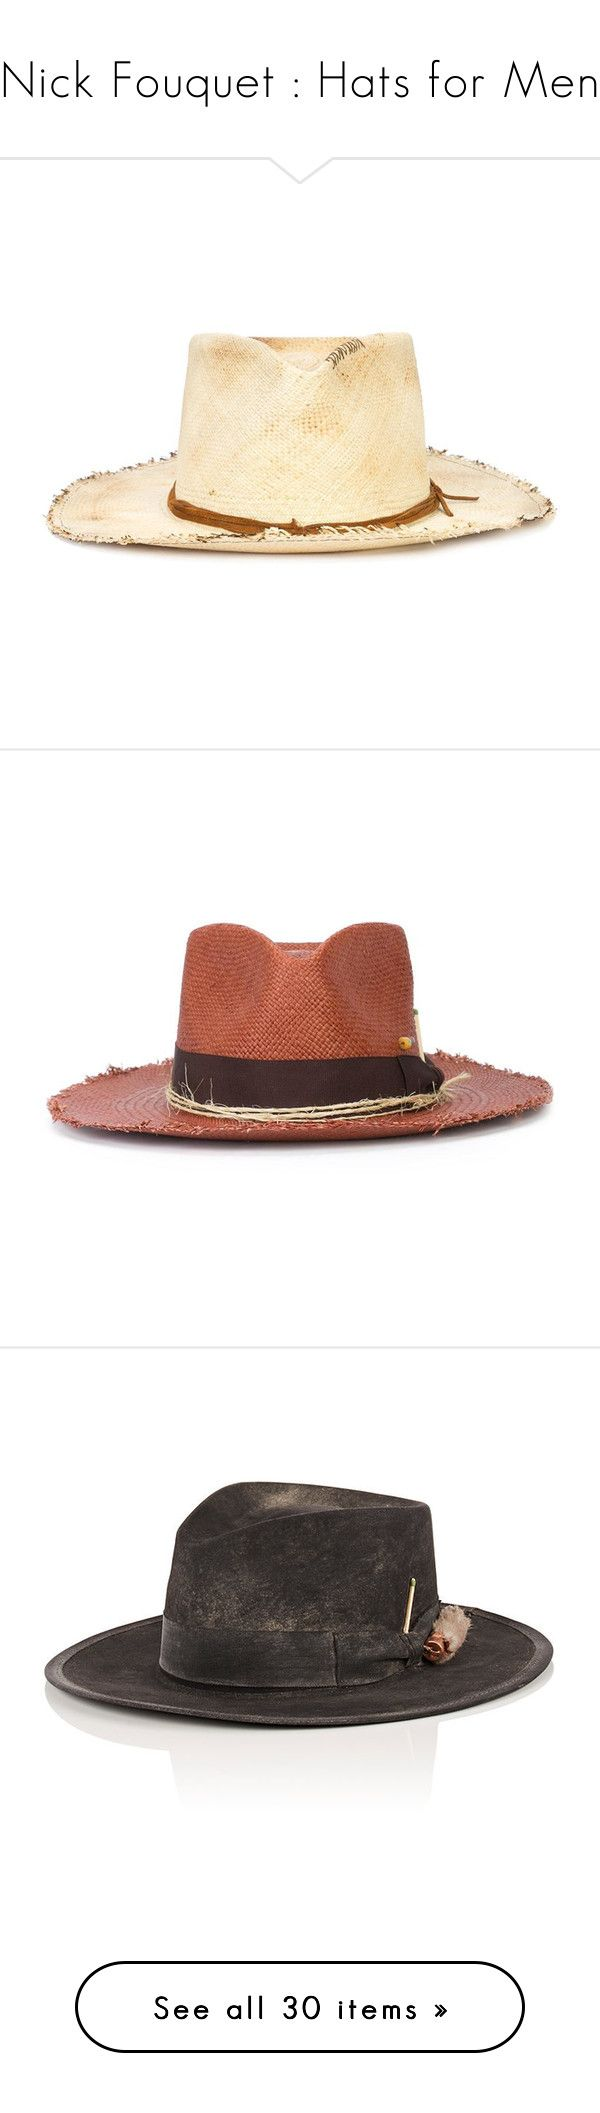 """""""Nick Fouquet : Hats for Men"""" by bianca-cazacu ❤ liked on Polyvore featuring men's fashion, men's accessories, men's hats, mens straw hats, brown, mens straw cowboy hats, mens western straw hats, black, mens fedora and mens felt fedora"""